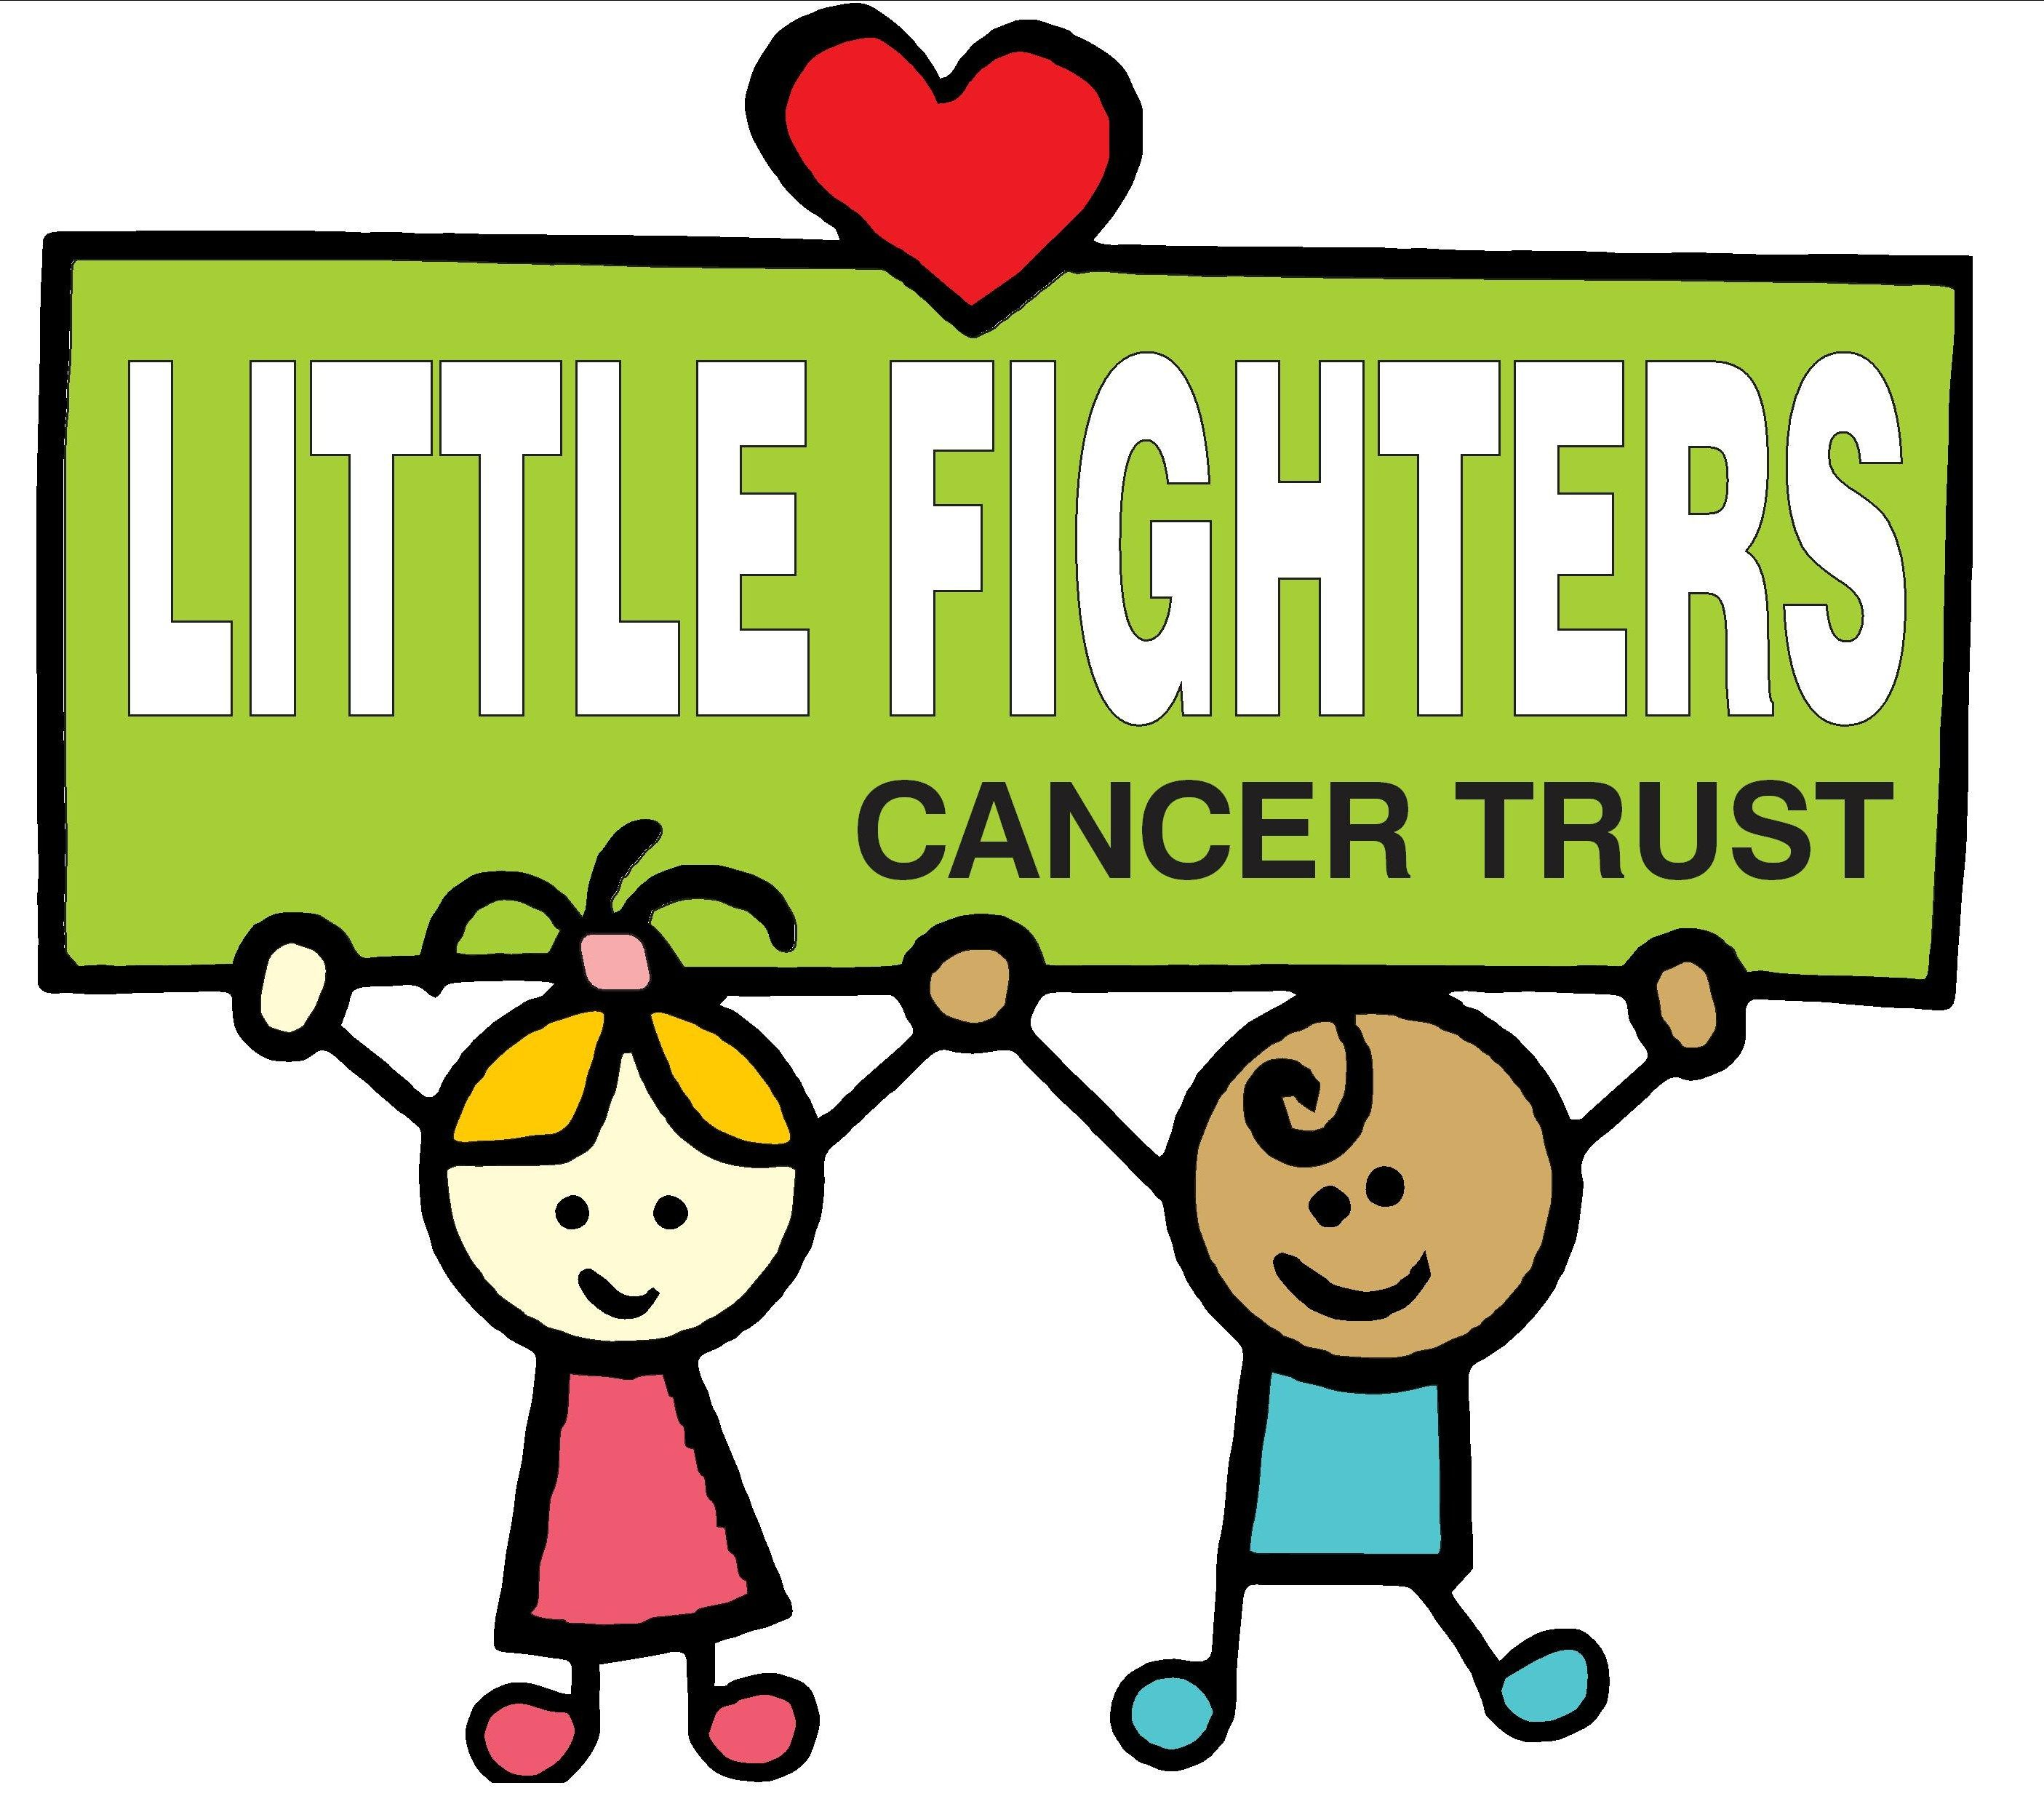 Little Fighters Cancer Trust Thumb Image